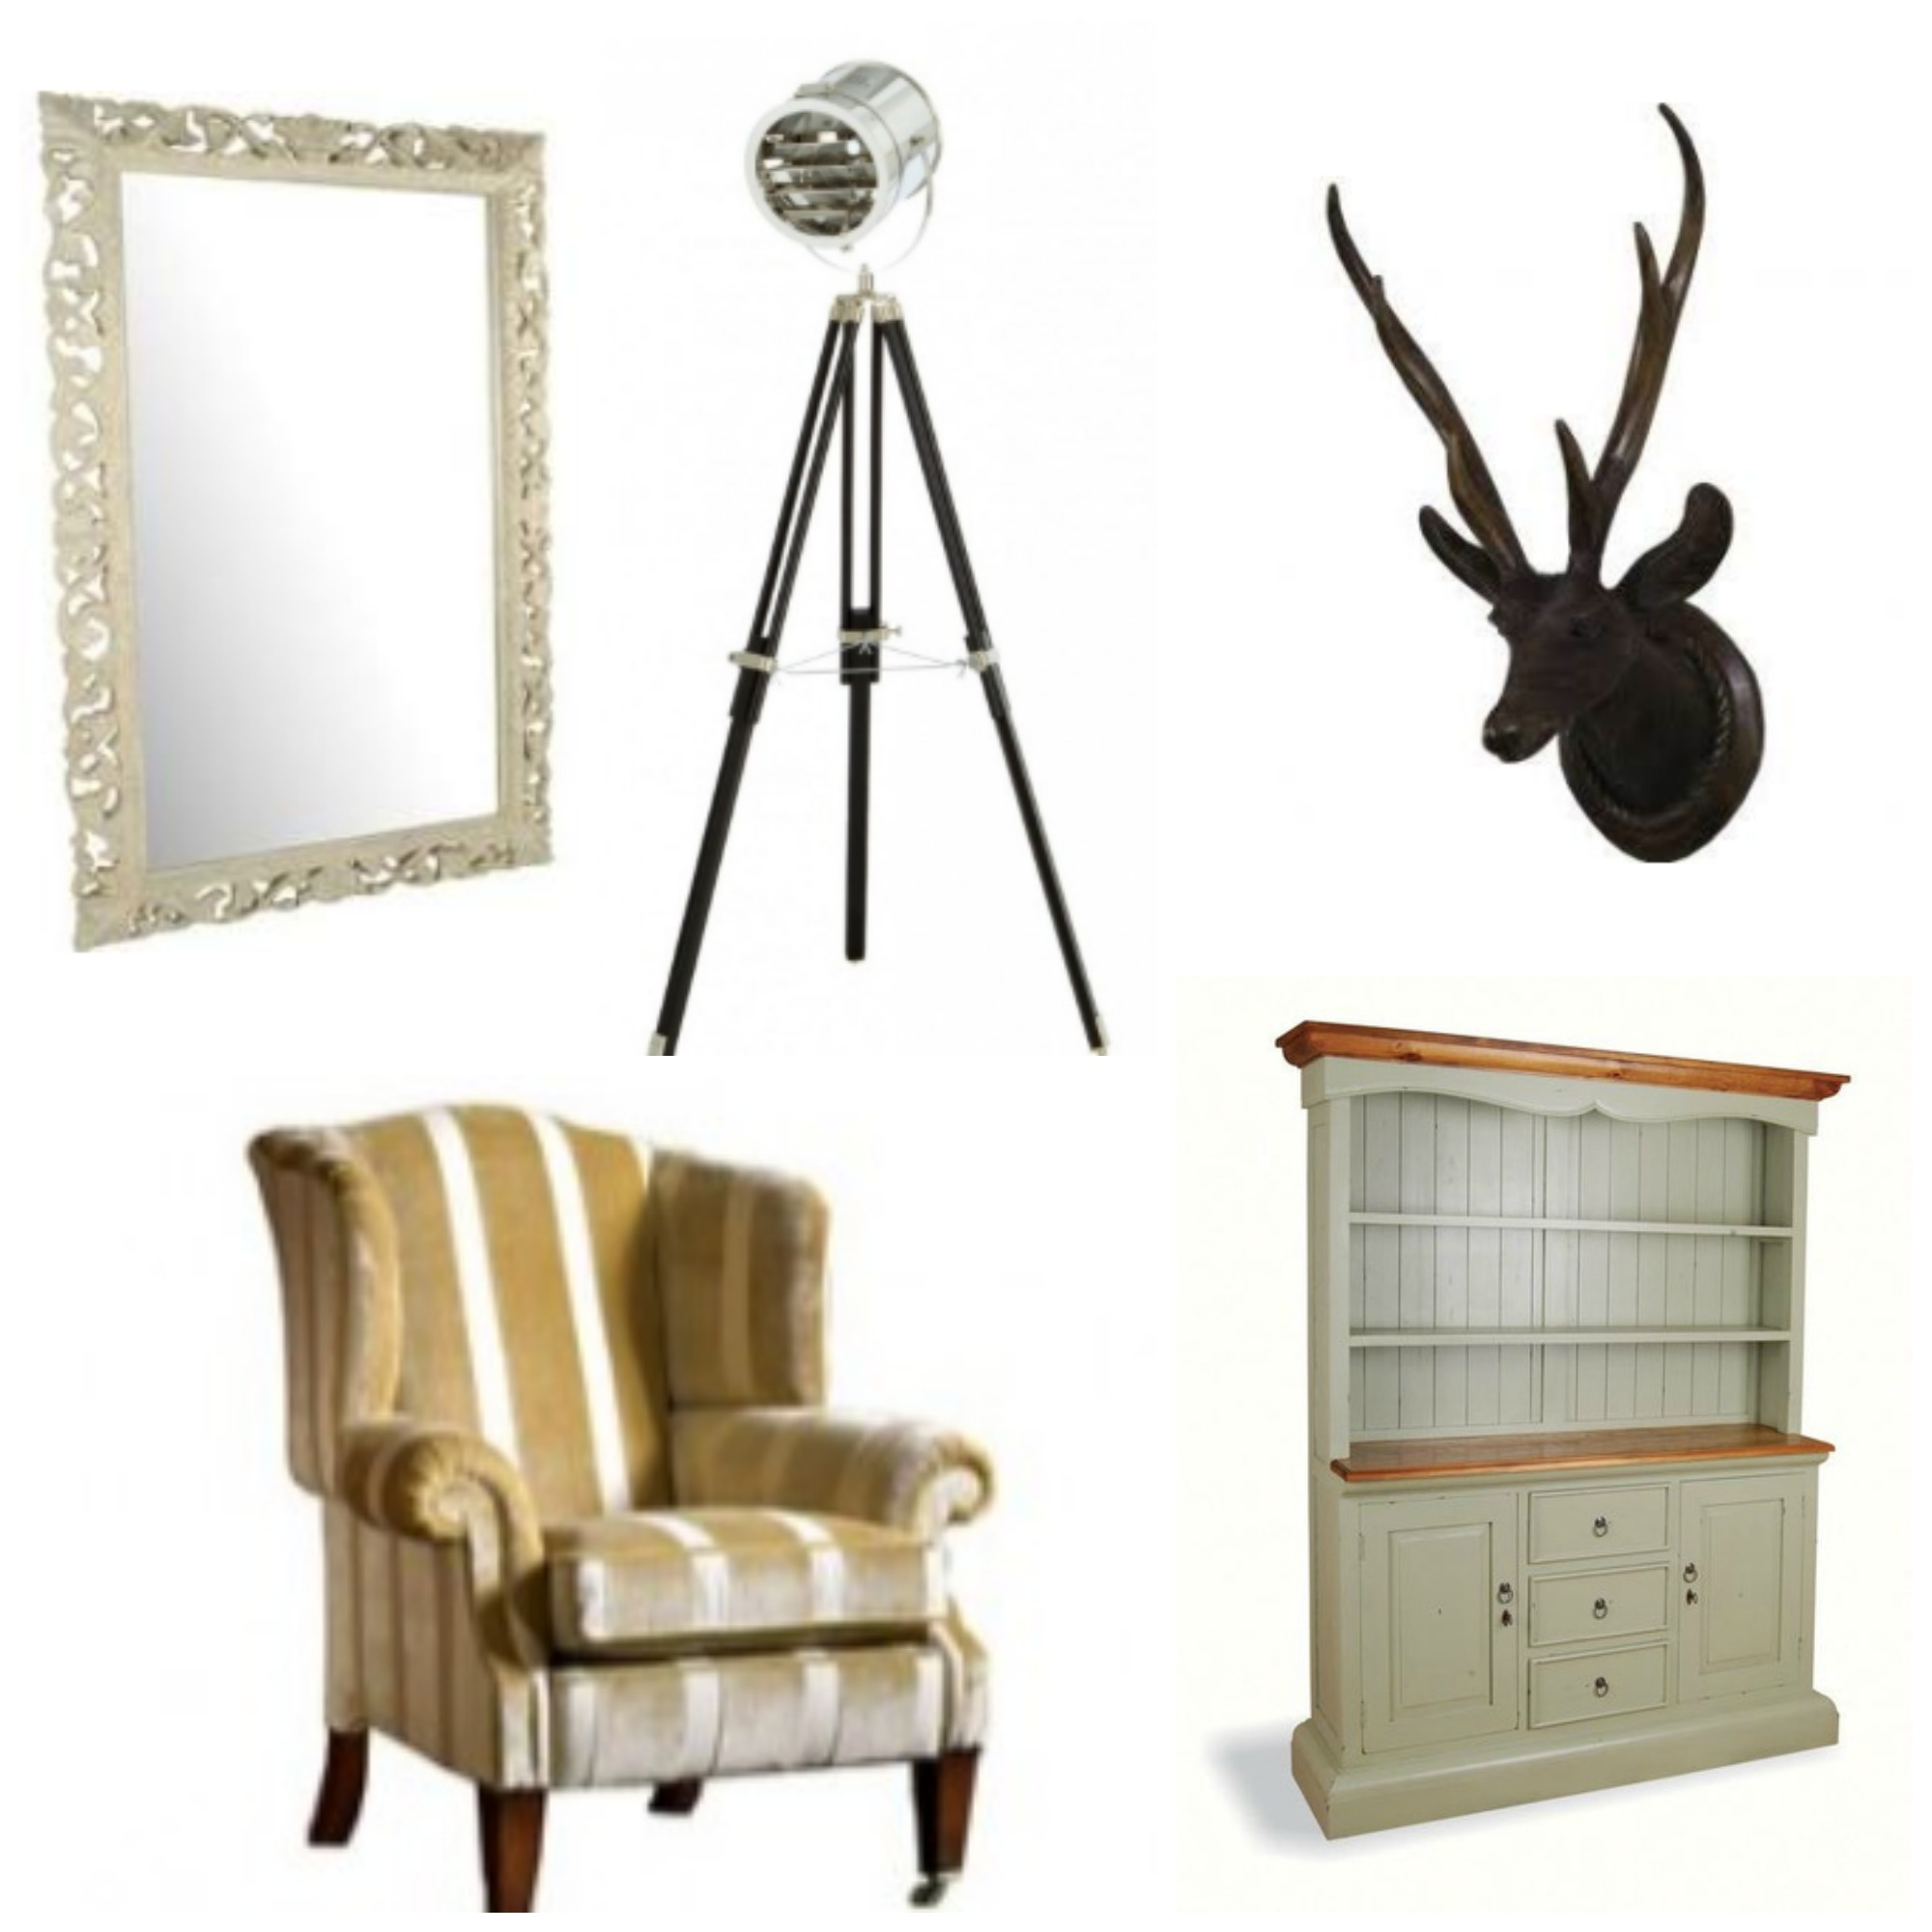 A Rustic Inspired Homeware Wish List